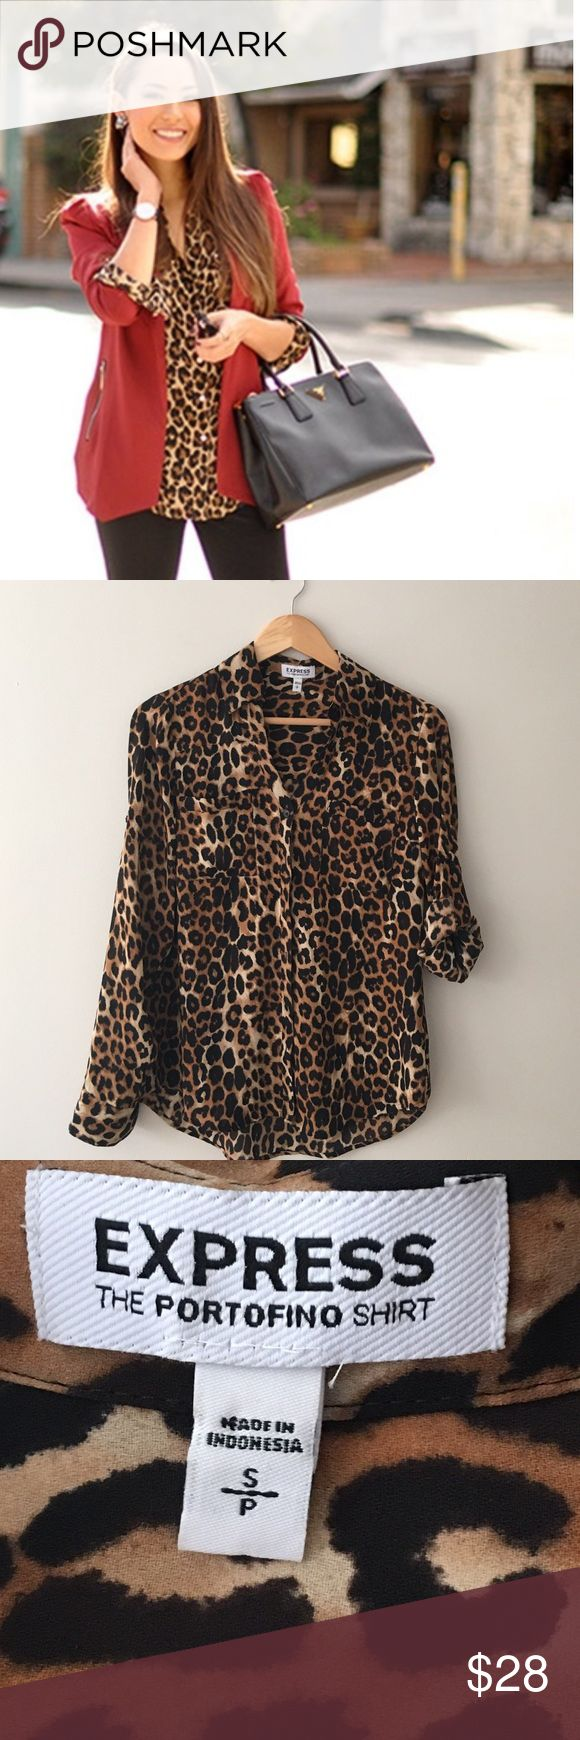 NWOT. Express Portofino Leopard Blouse The Portofino Blouse in leopard print by Express. Convertible sleeves. Button front. Size S/P. Express Tops Button Down Shirts